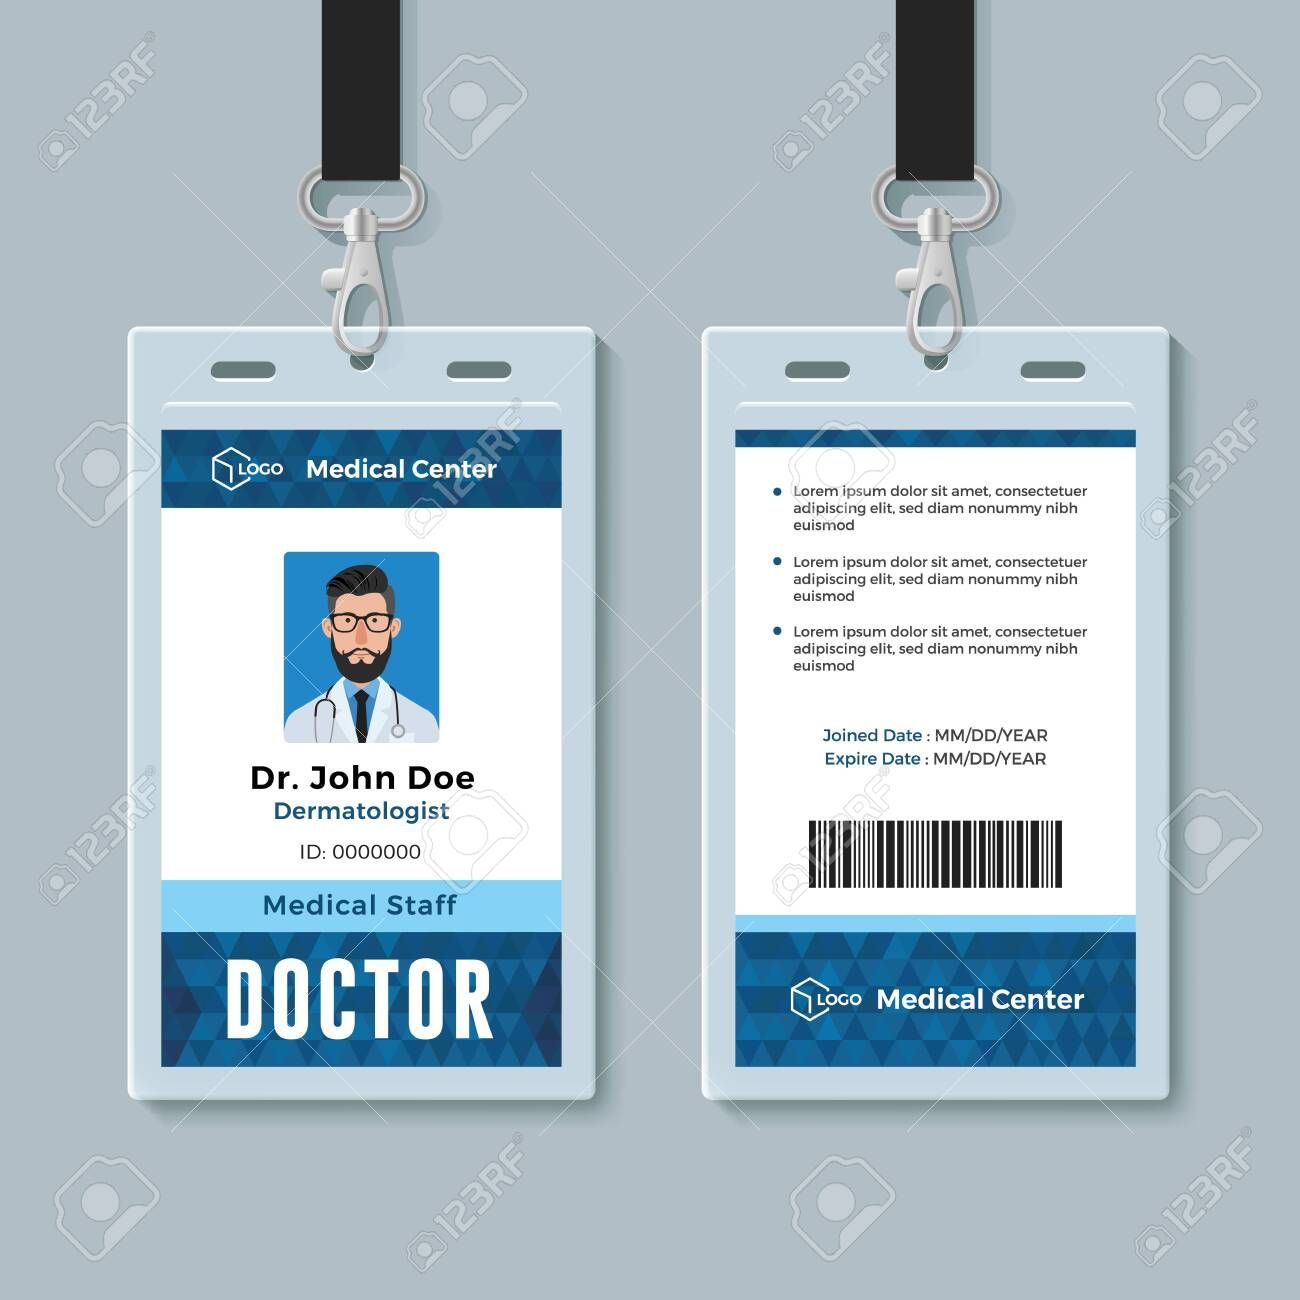 The Astonishing Doctor Id Card Medical Identity Badge Design Template For Doctor Id Card Template Digital Pho Employee Id Card Id Card Template Badge Template